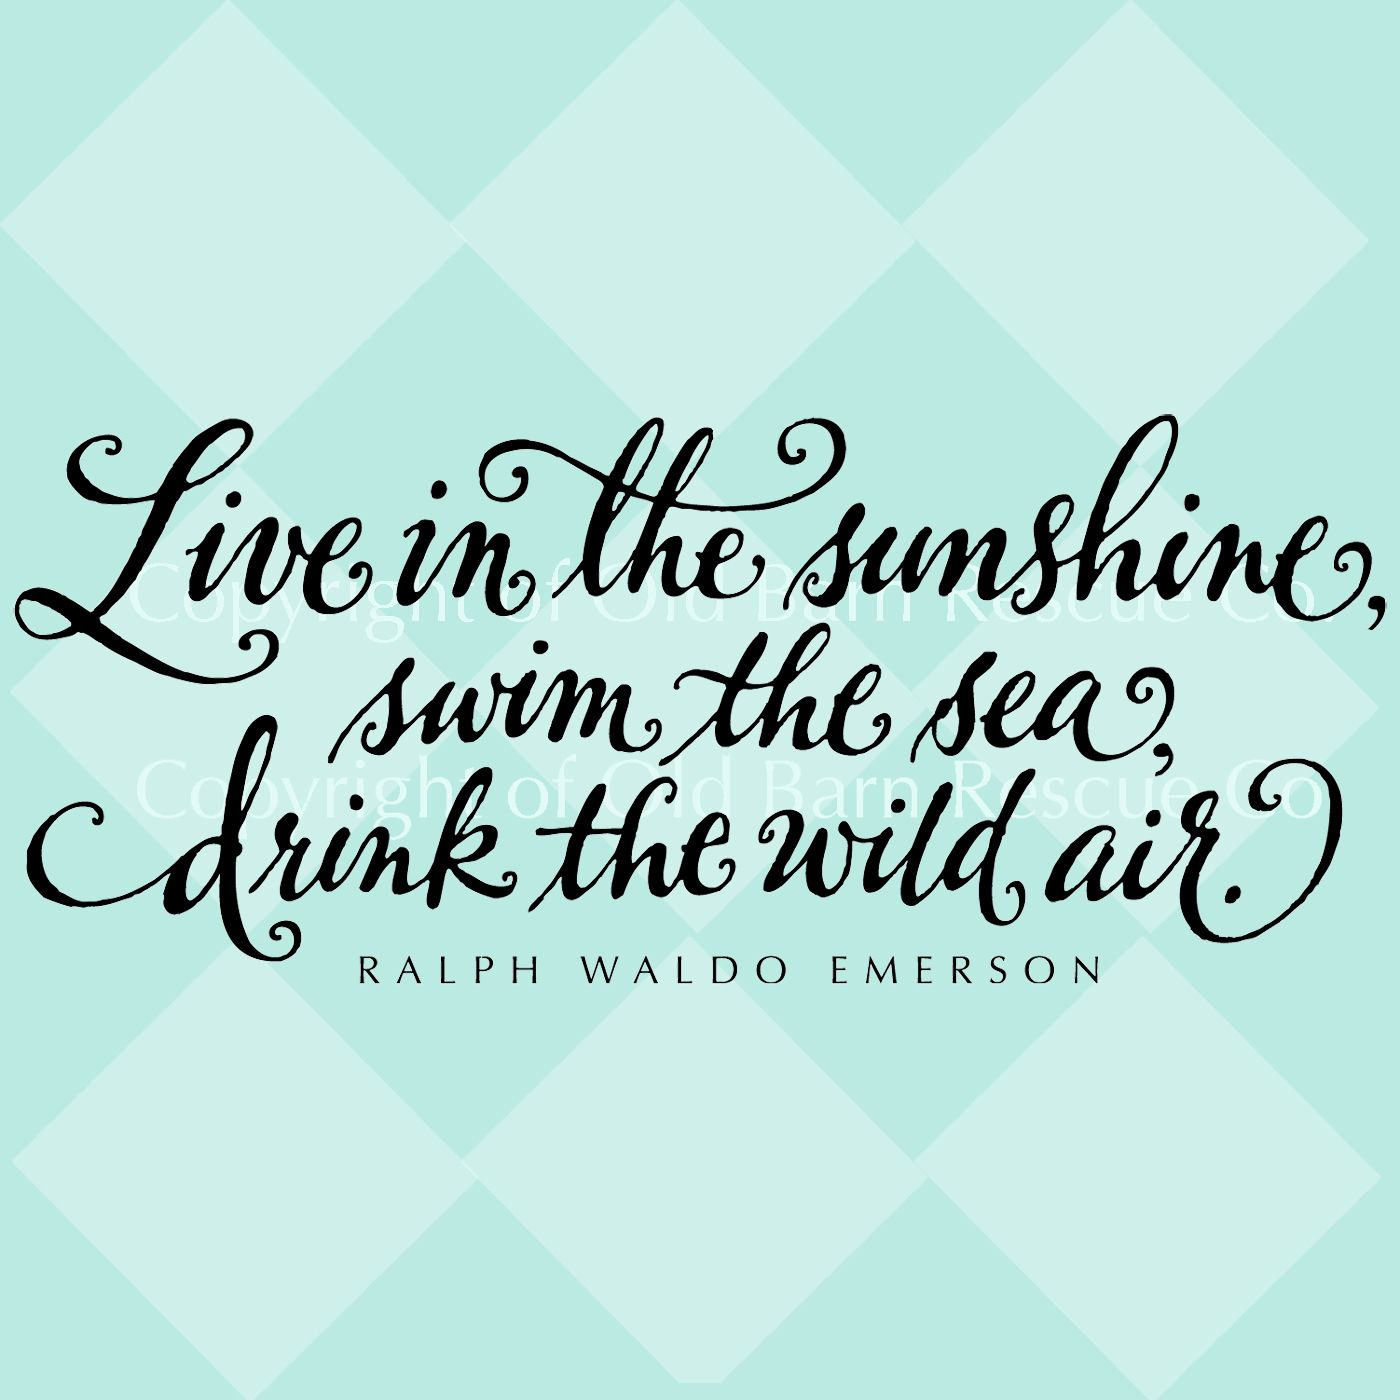 Live In The Sunshine, Swim The Sea, Drink The Wild Air.   Ralph